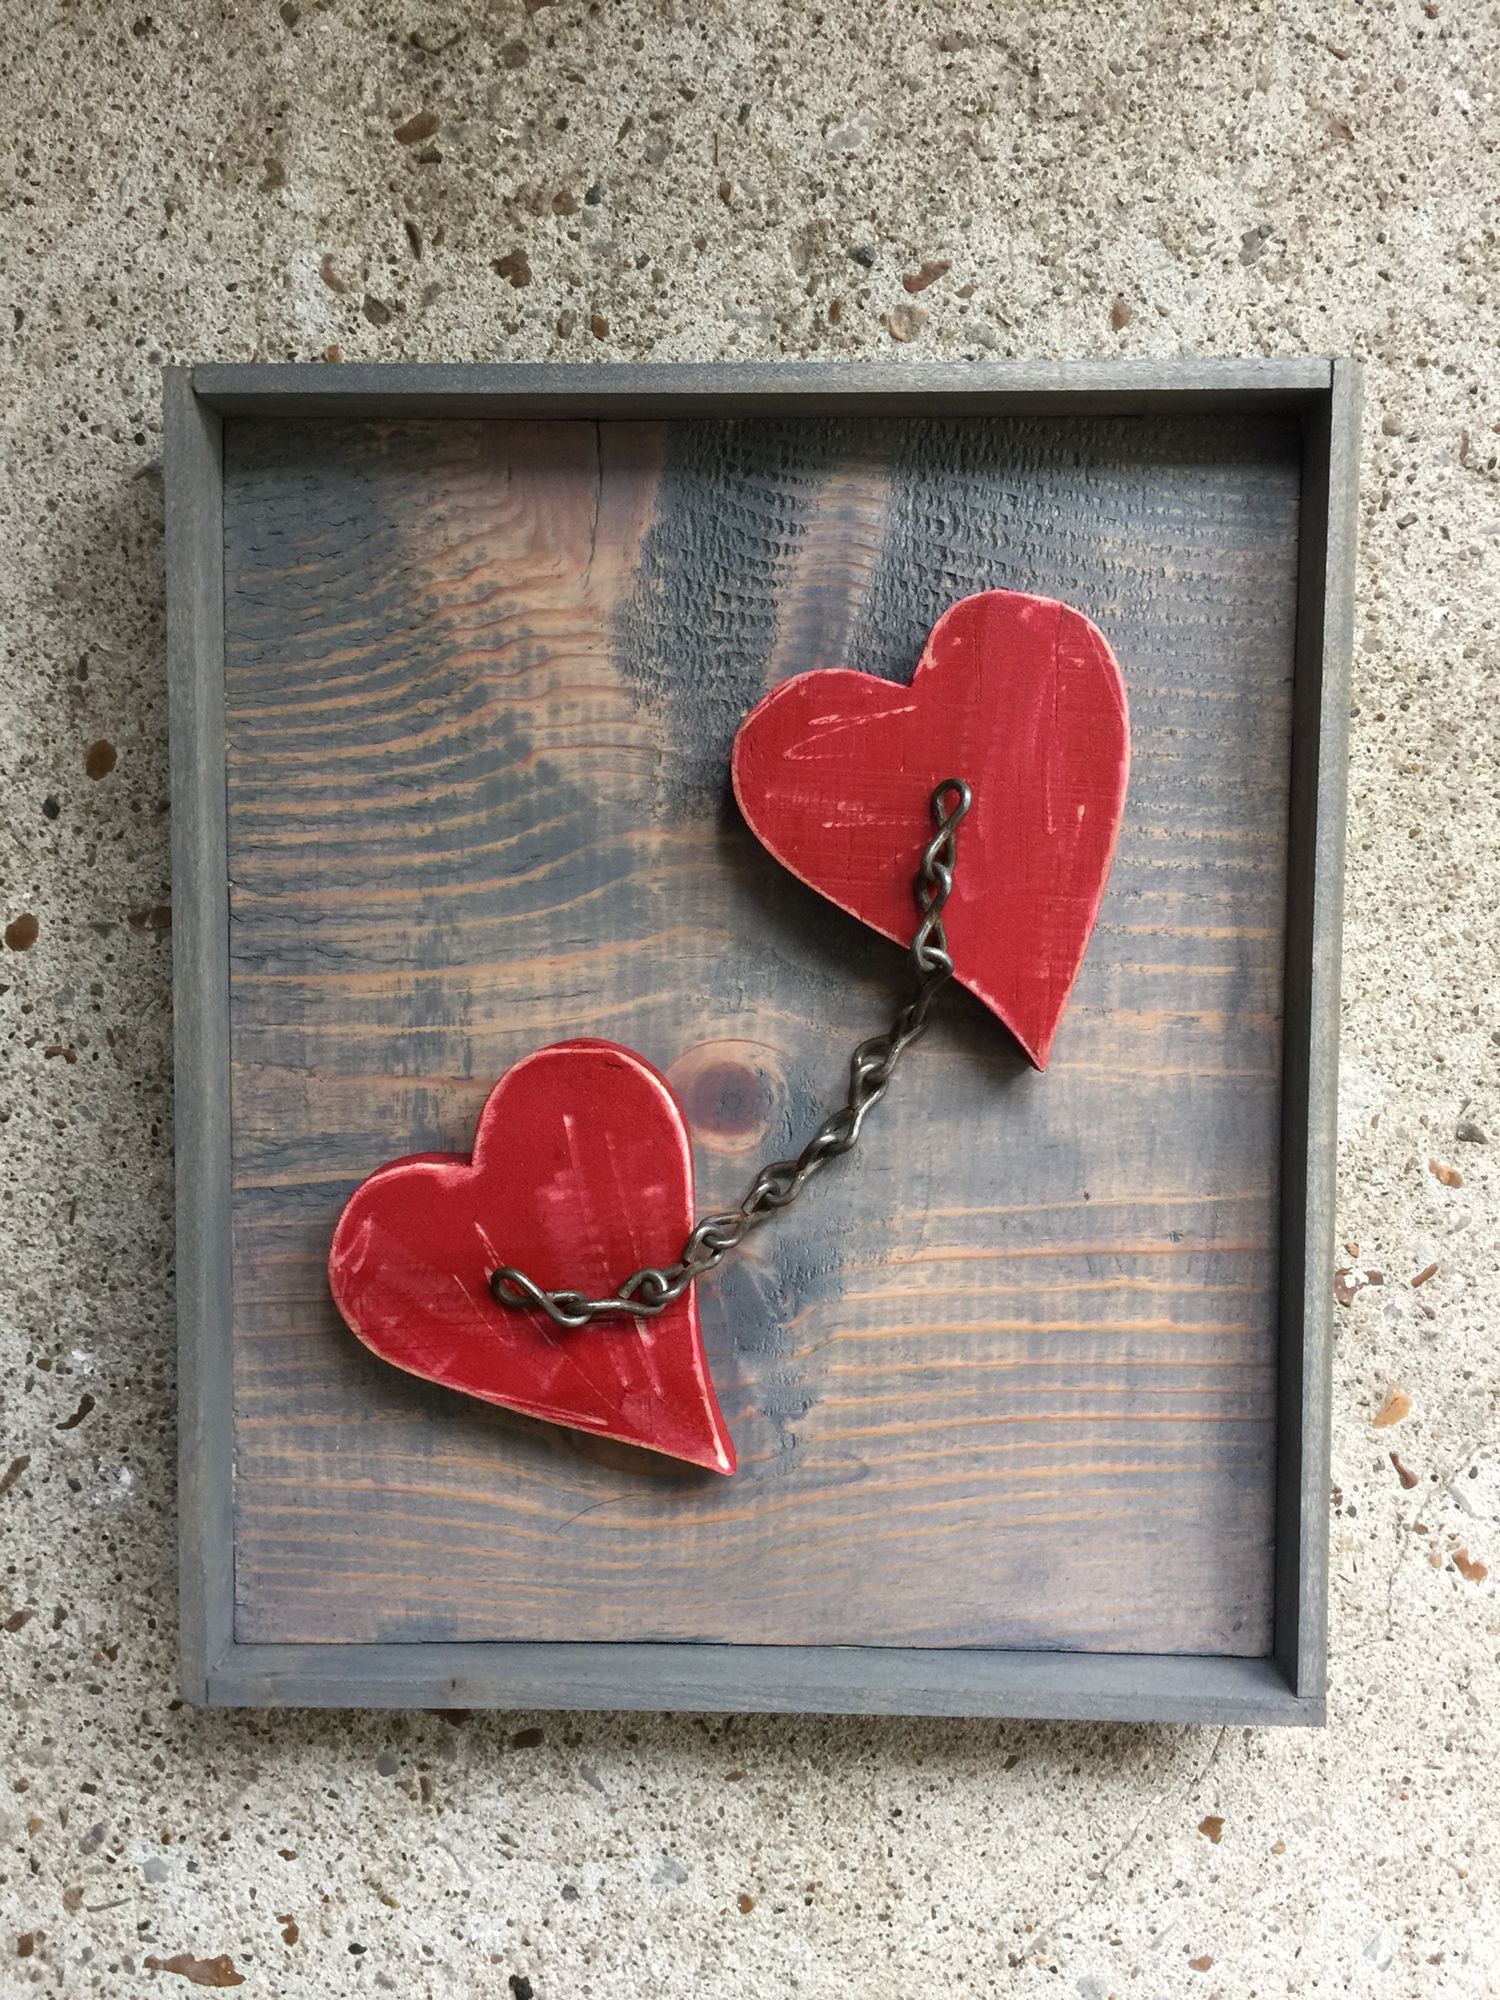 Two Hearts Chained Together Wood Craft Valentine S Day Valentine Wood Crafts Wooden Hearts Crafts Wood Hearts